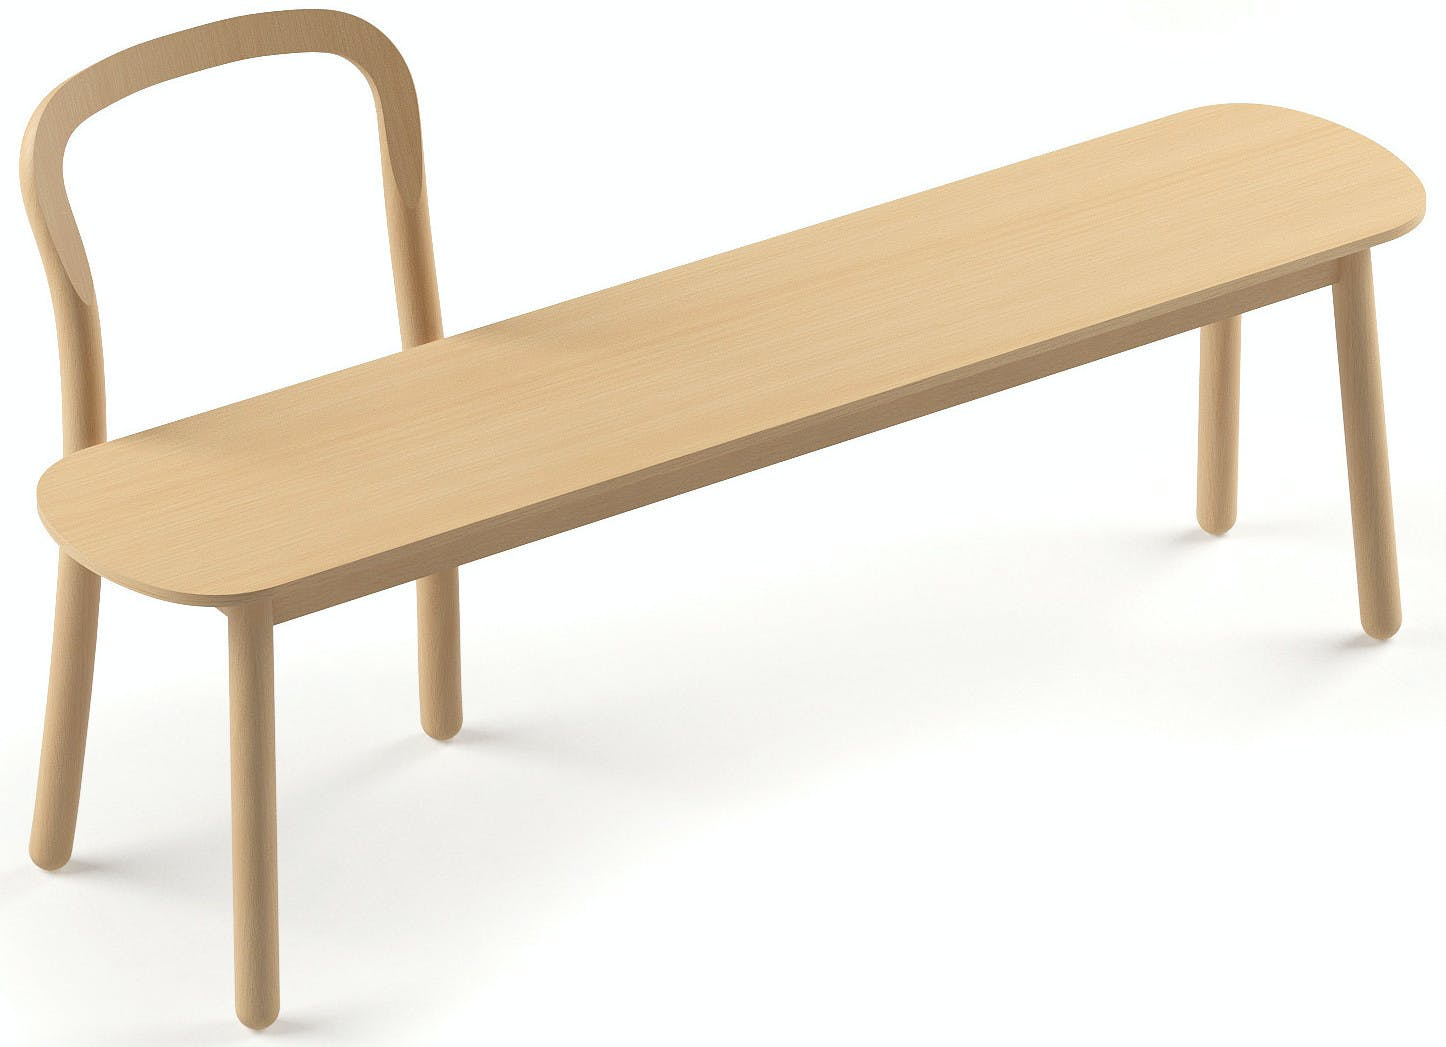 Dum-furniture-beech-bench-haute-living